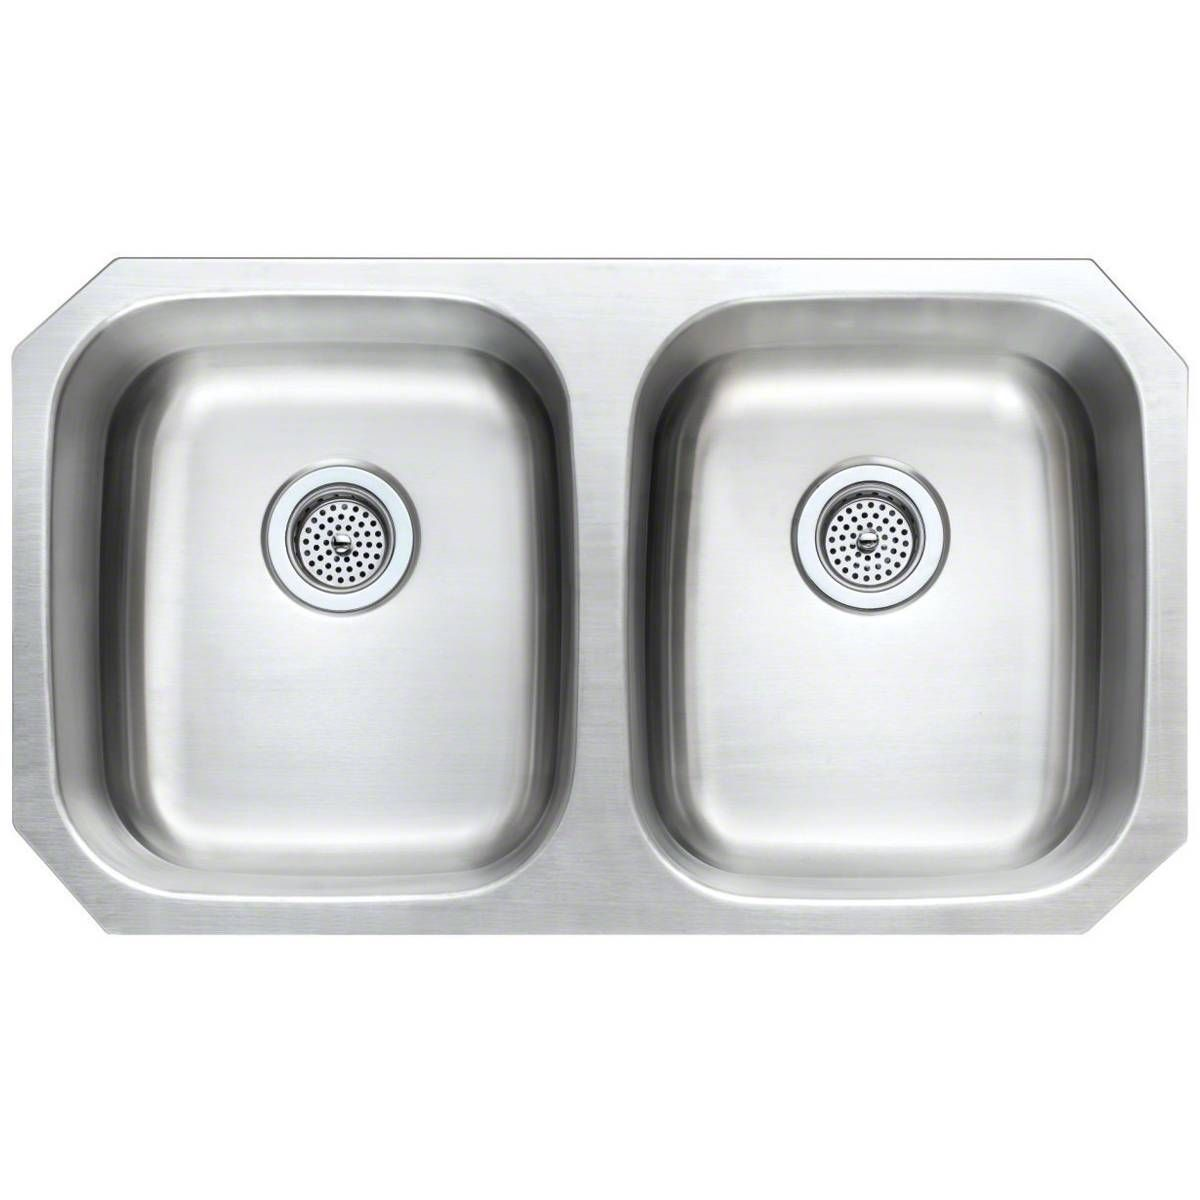 Stainless Steel Low Divide Split Kitchen Sink Measuring 33 X 22